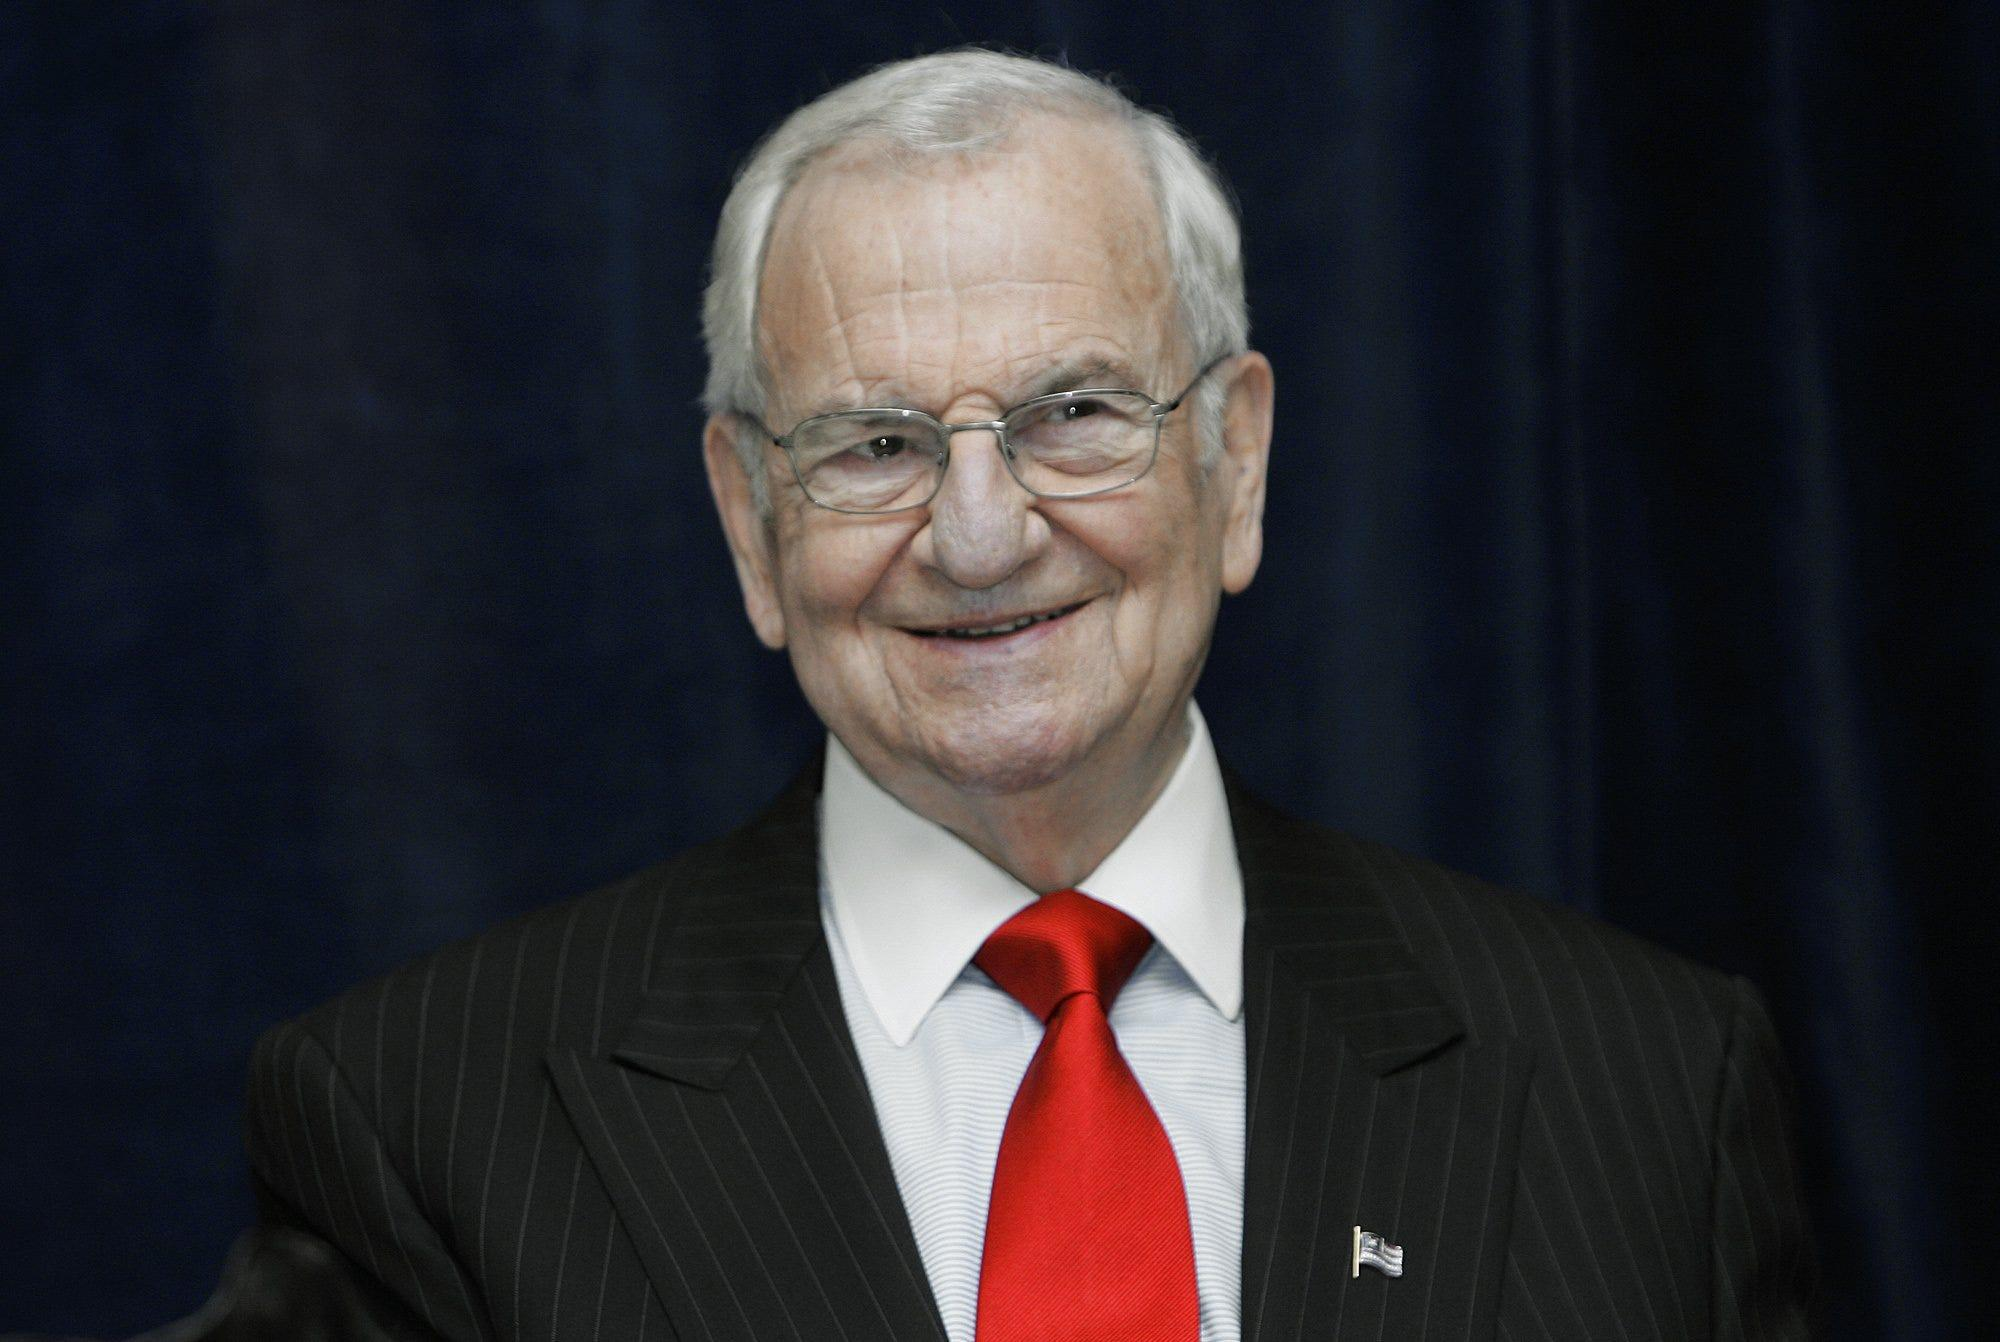 Father of the Mustang, midwife to the minivan, rescuer of Chrysler Corp., Lee Iacocca changed the course of automotive history.